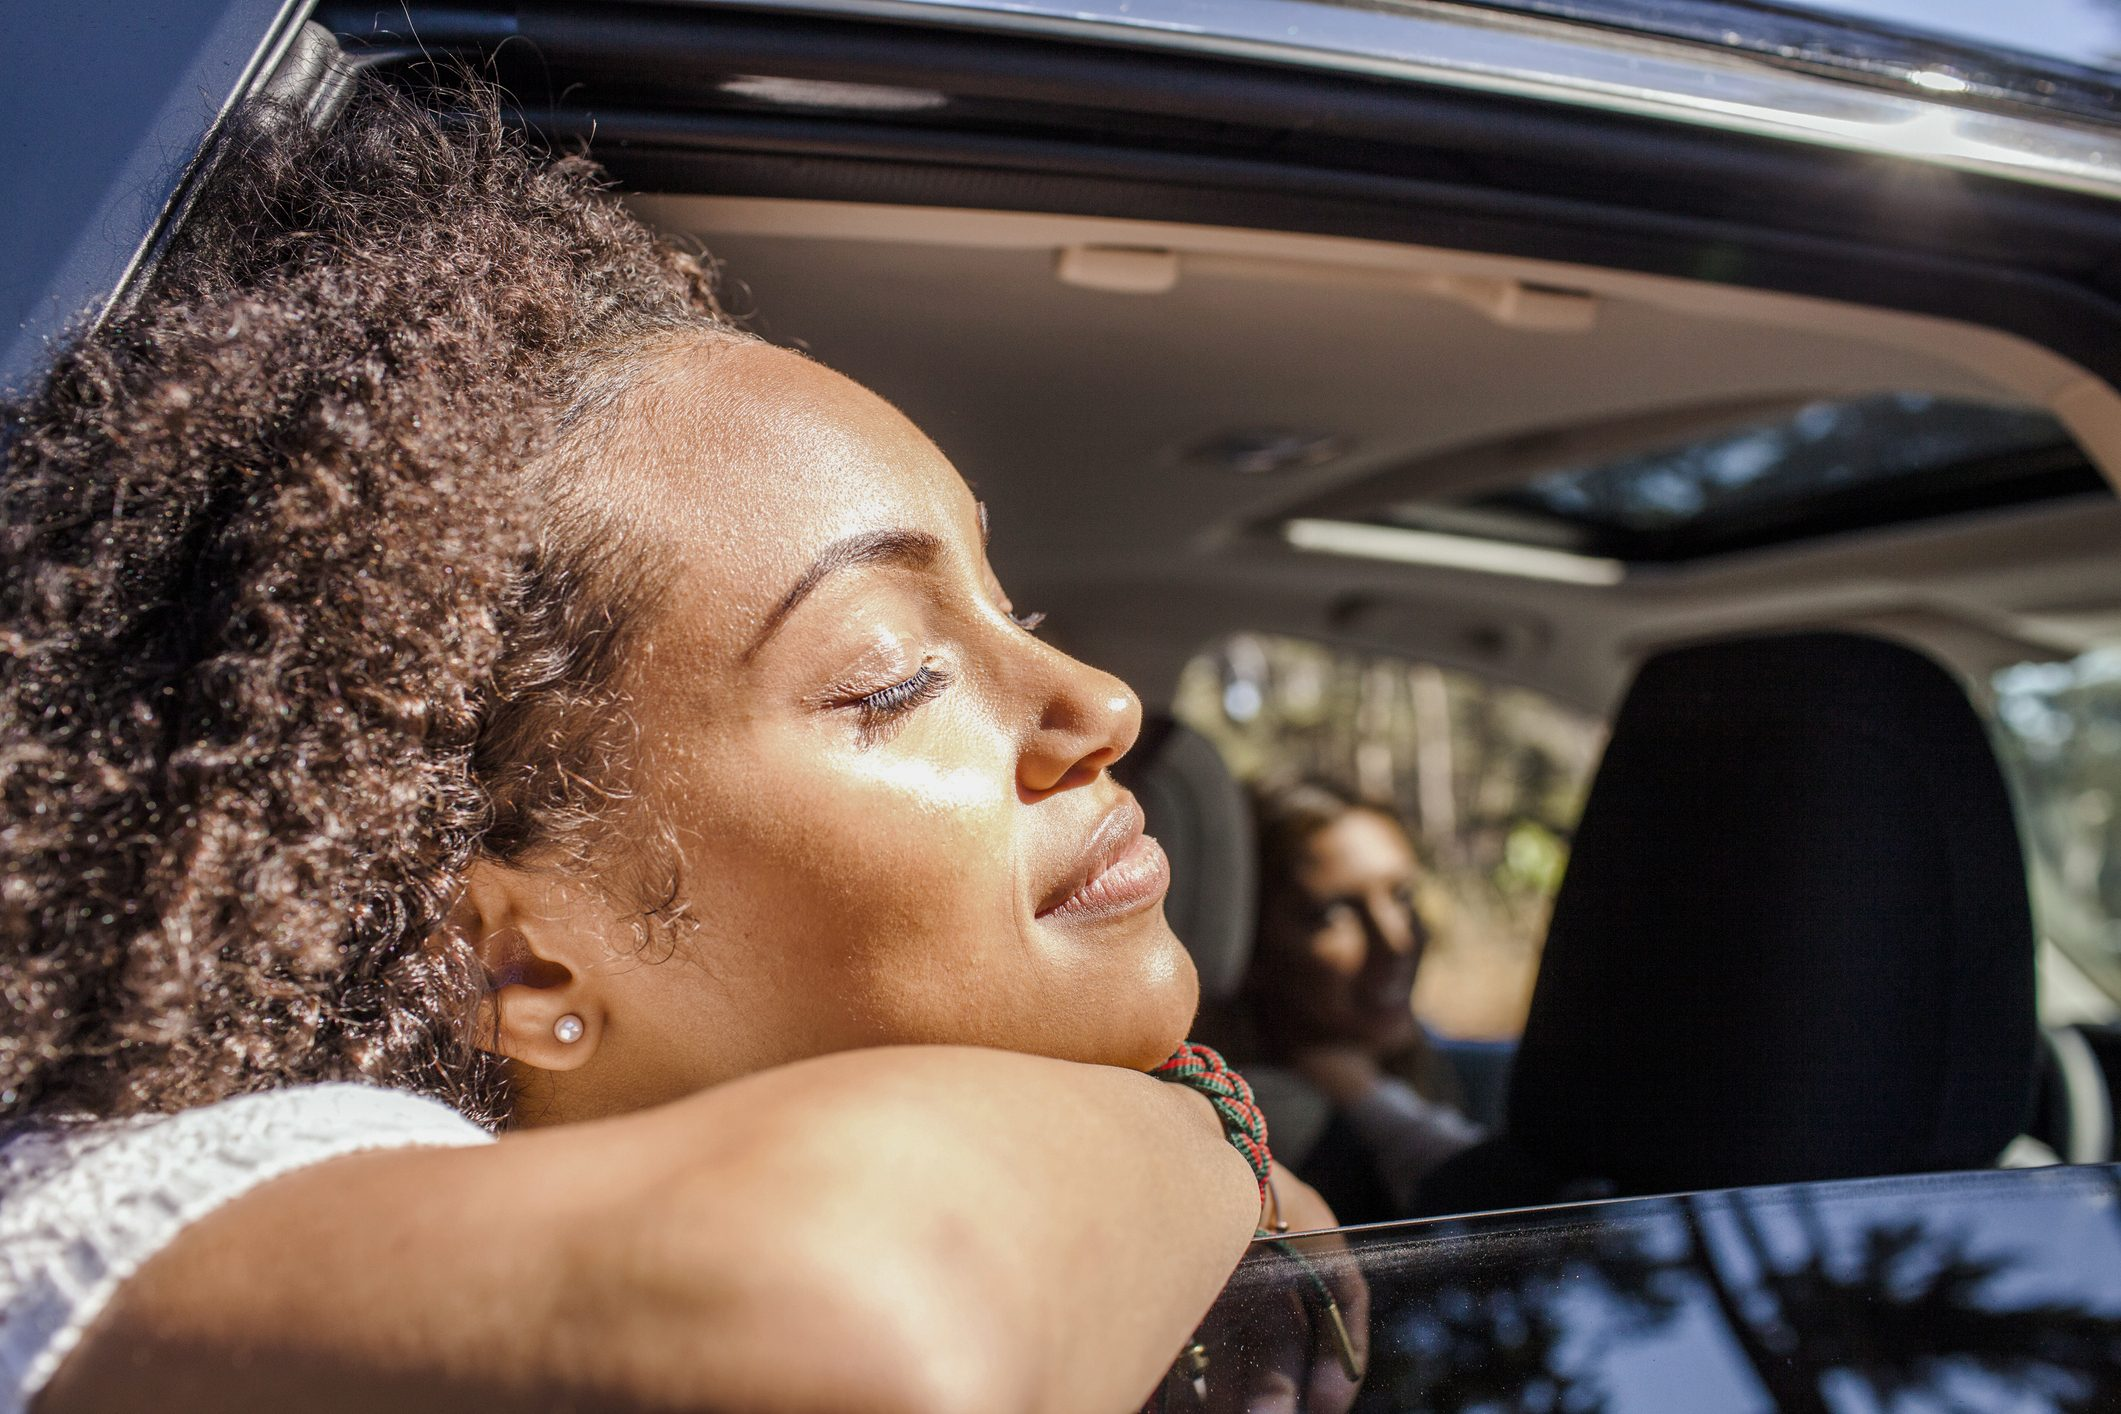 woman with head out of car window soaking up the sunshine